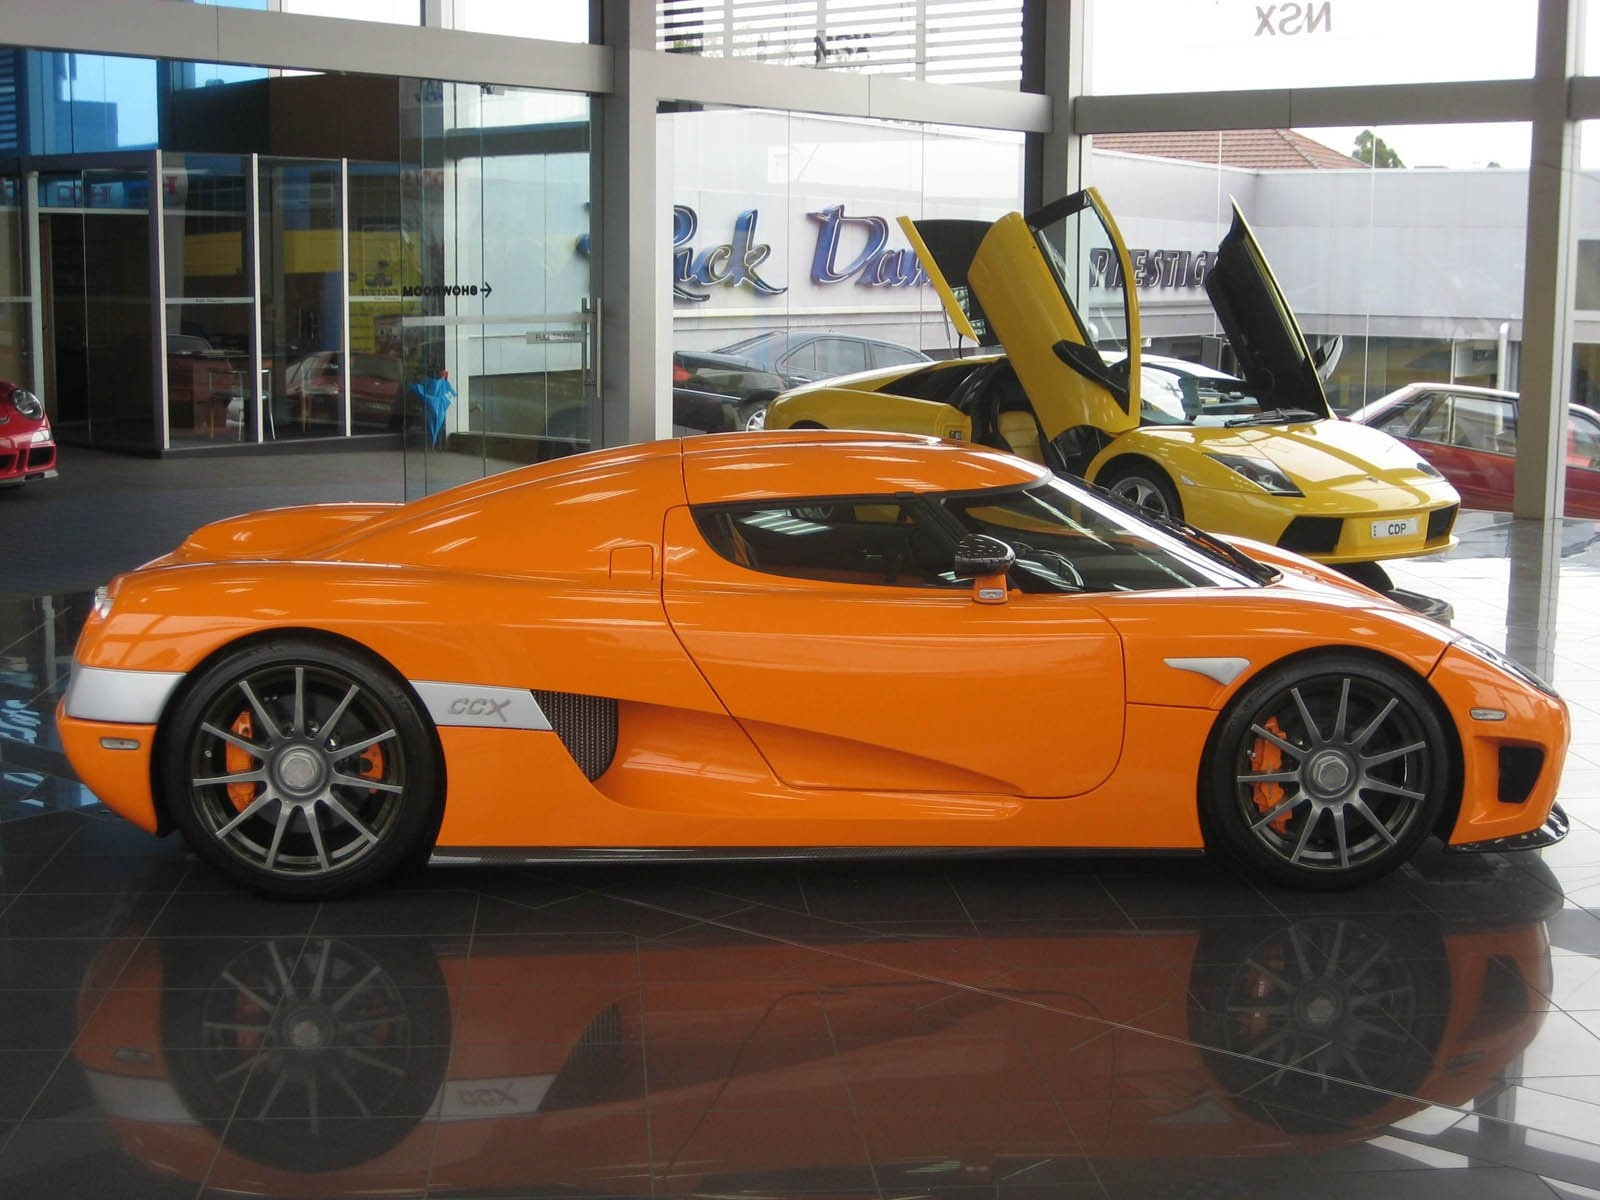 Sports Cars For Sale >> Cars Sale Cheap Elegant Affordable Sports Cars For Sale Exterior And